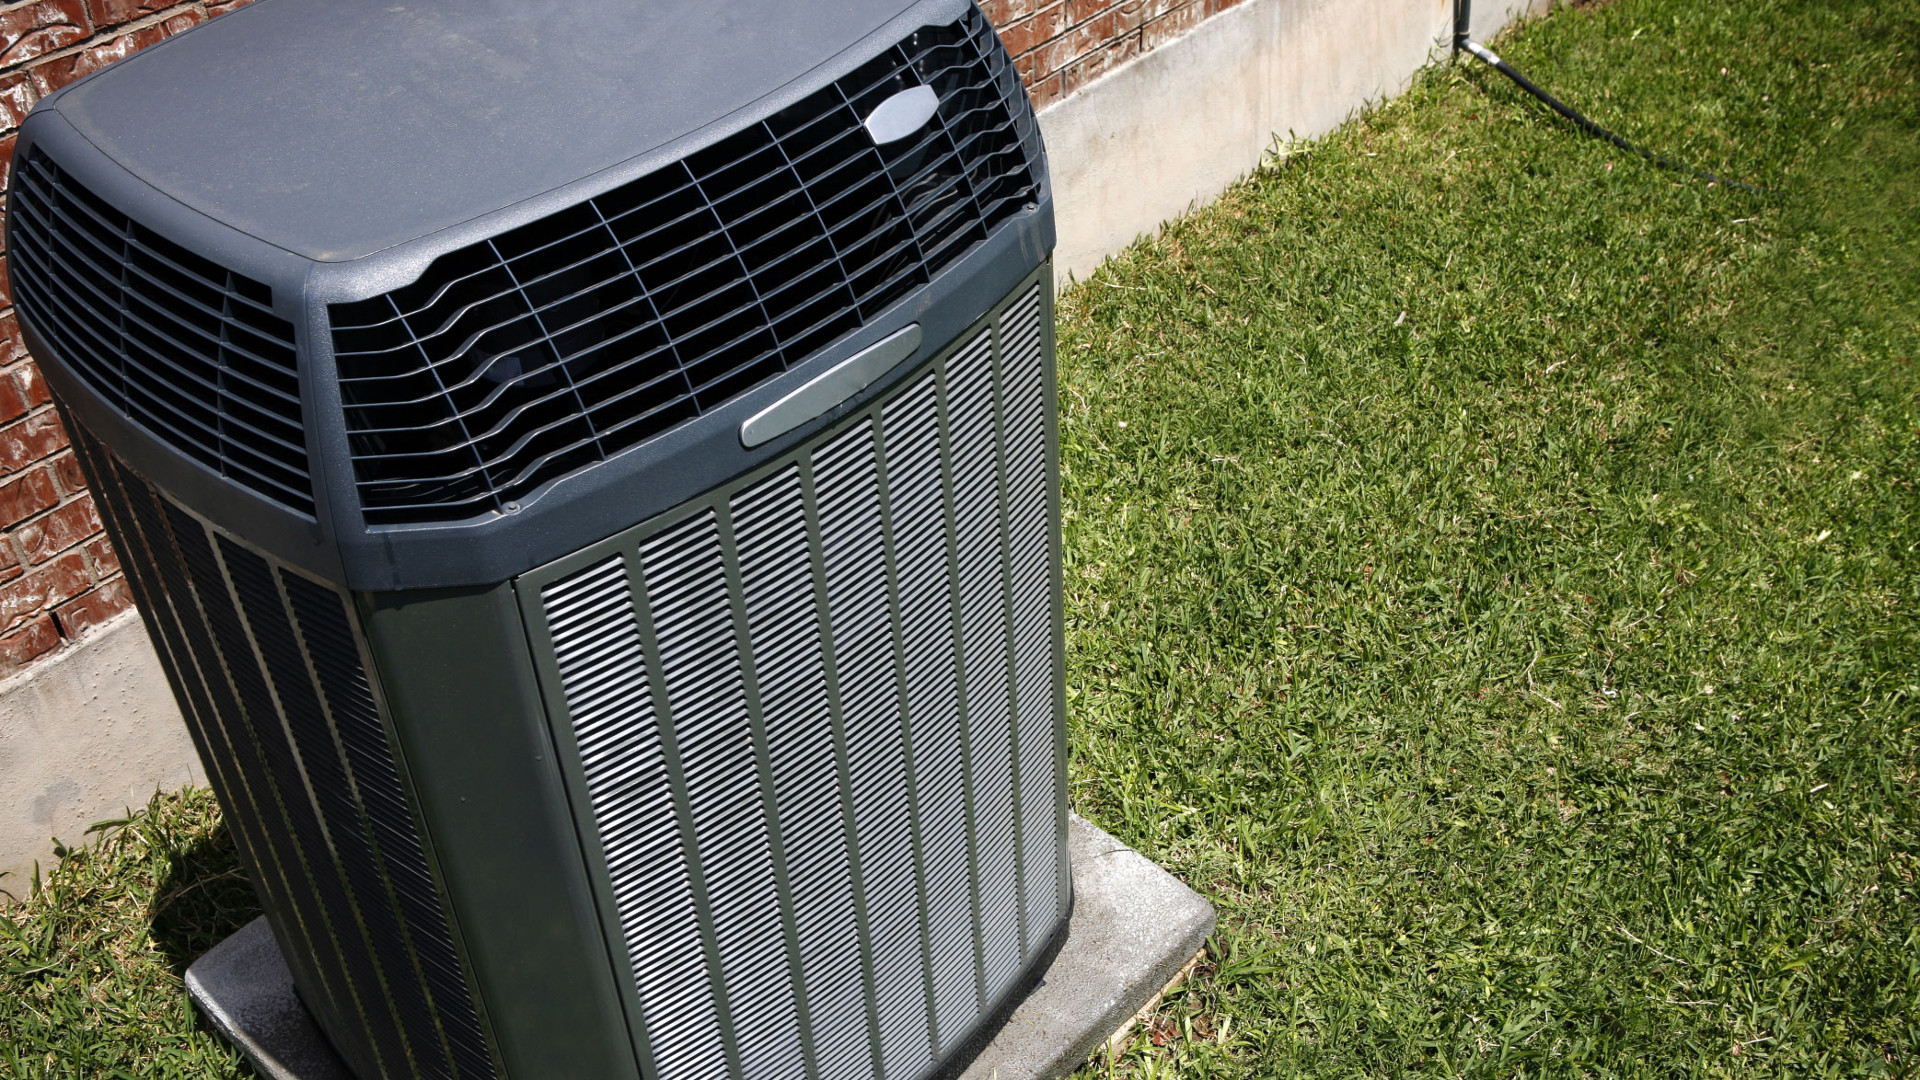 How to Find Air Conditioner Contractors for HVAC Troubleshooting